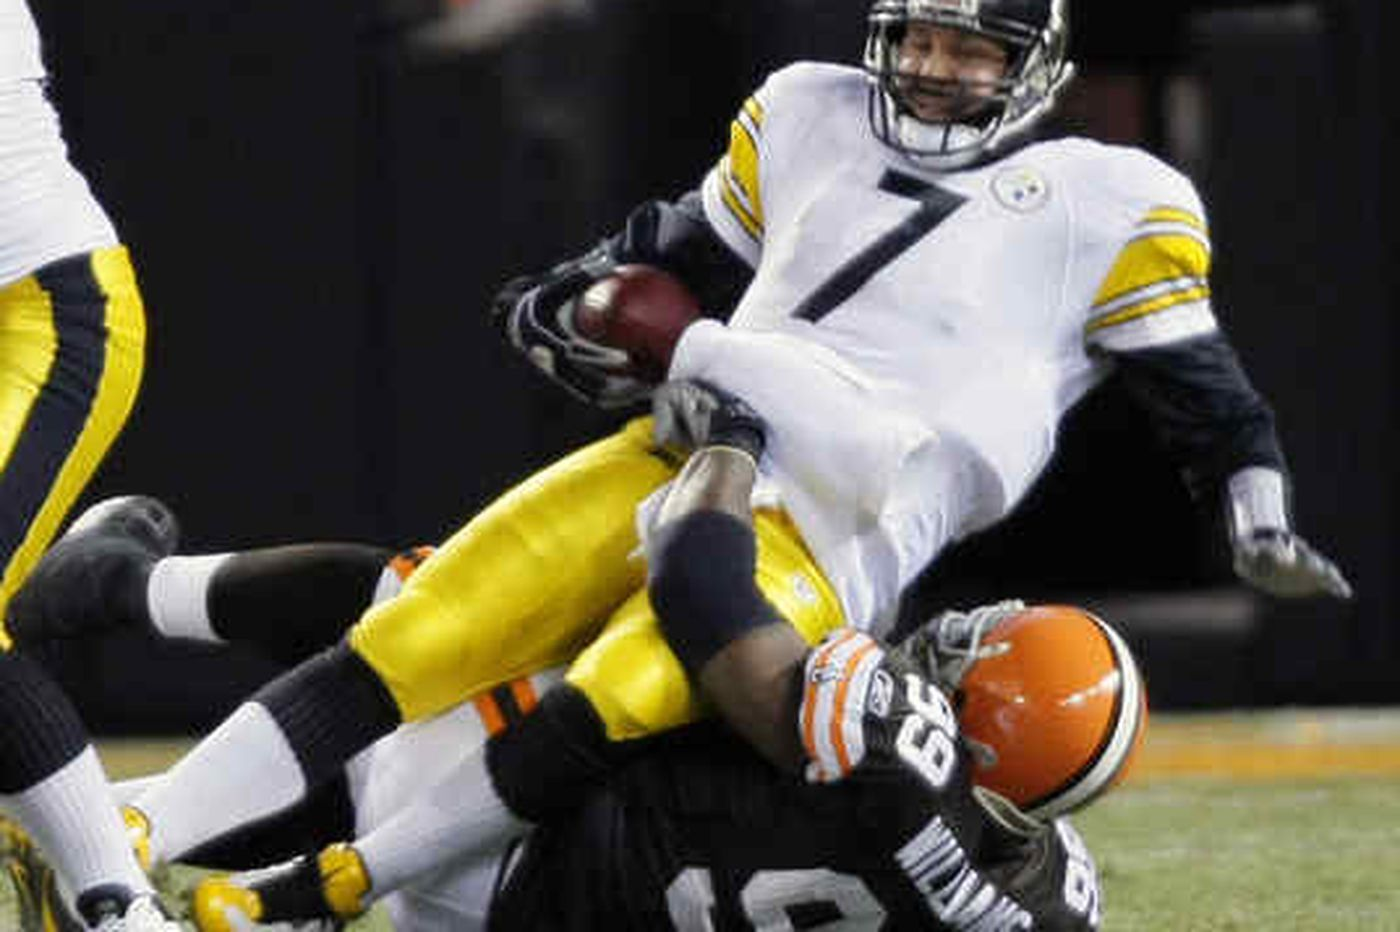 NFL: Steelers' skid at 5 as Browns prevail